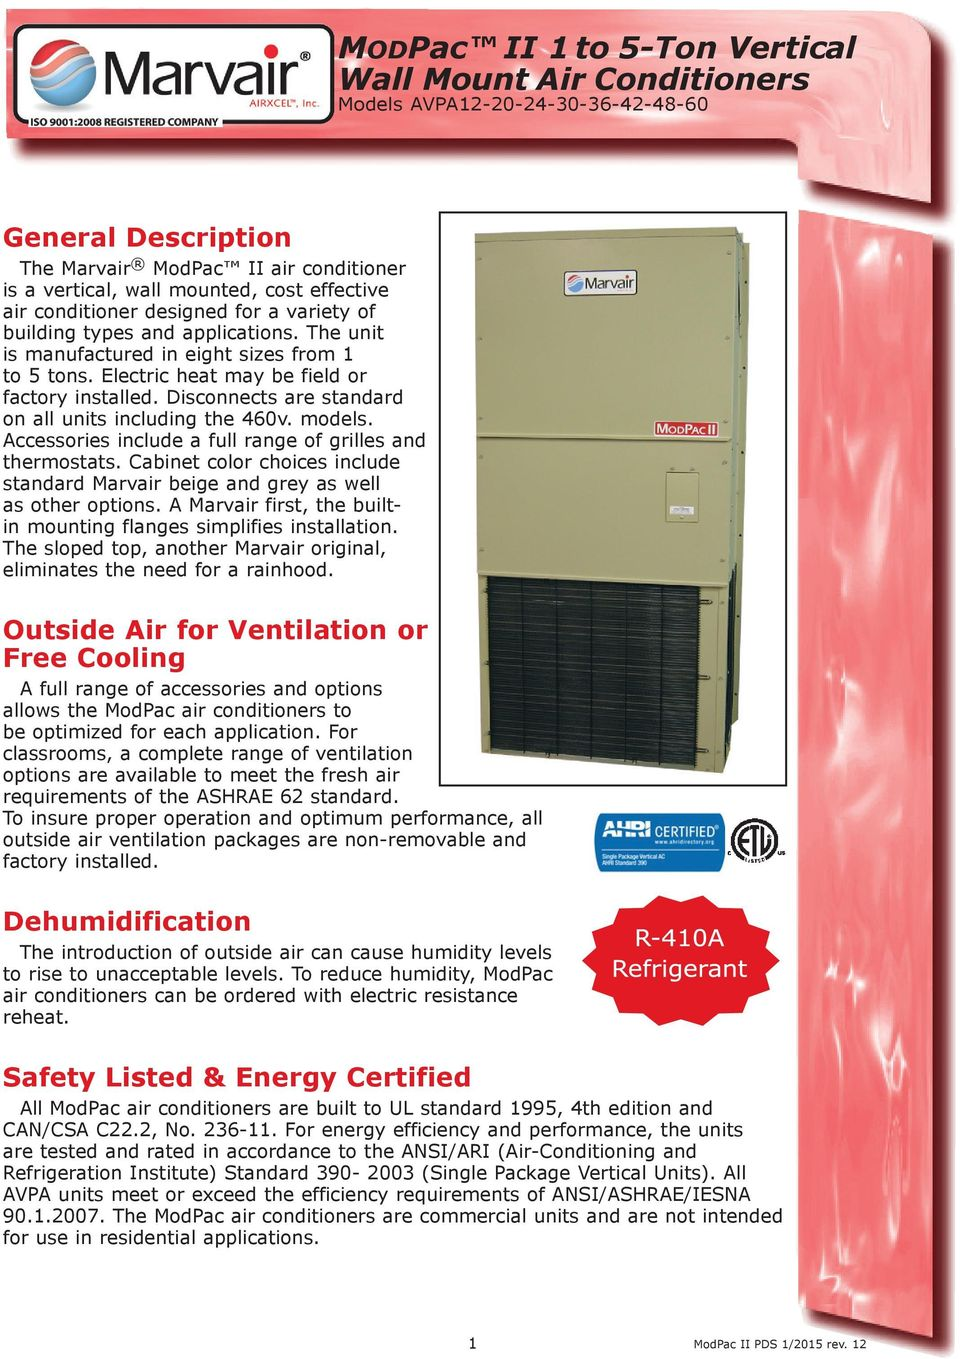 ModPac II 1 to 5-Ton Vertical Wall Mount Air Conditioners